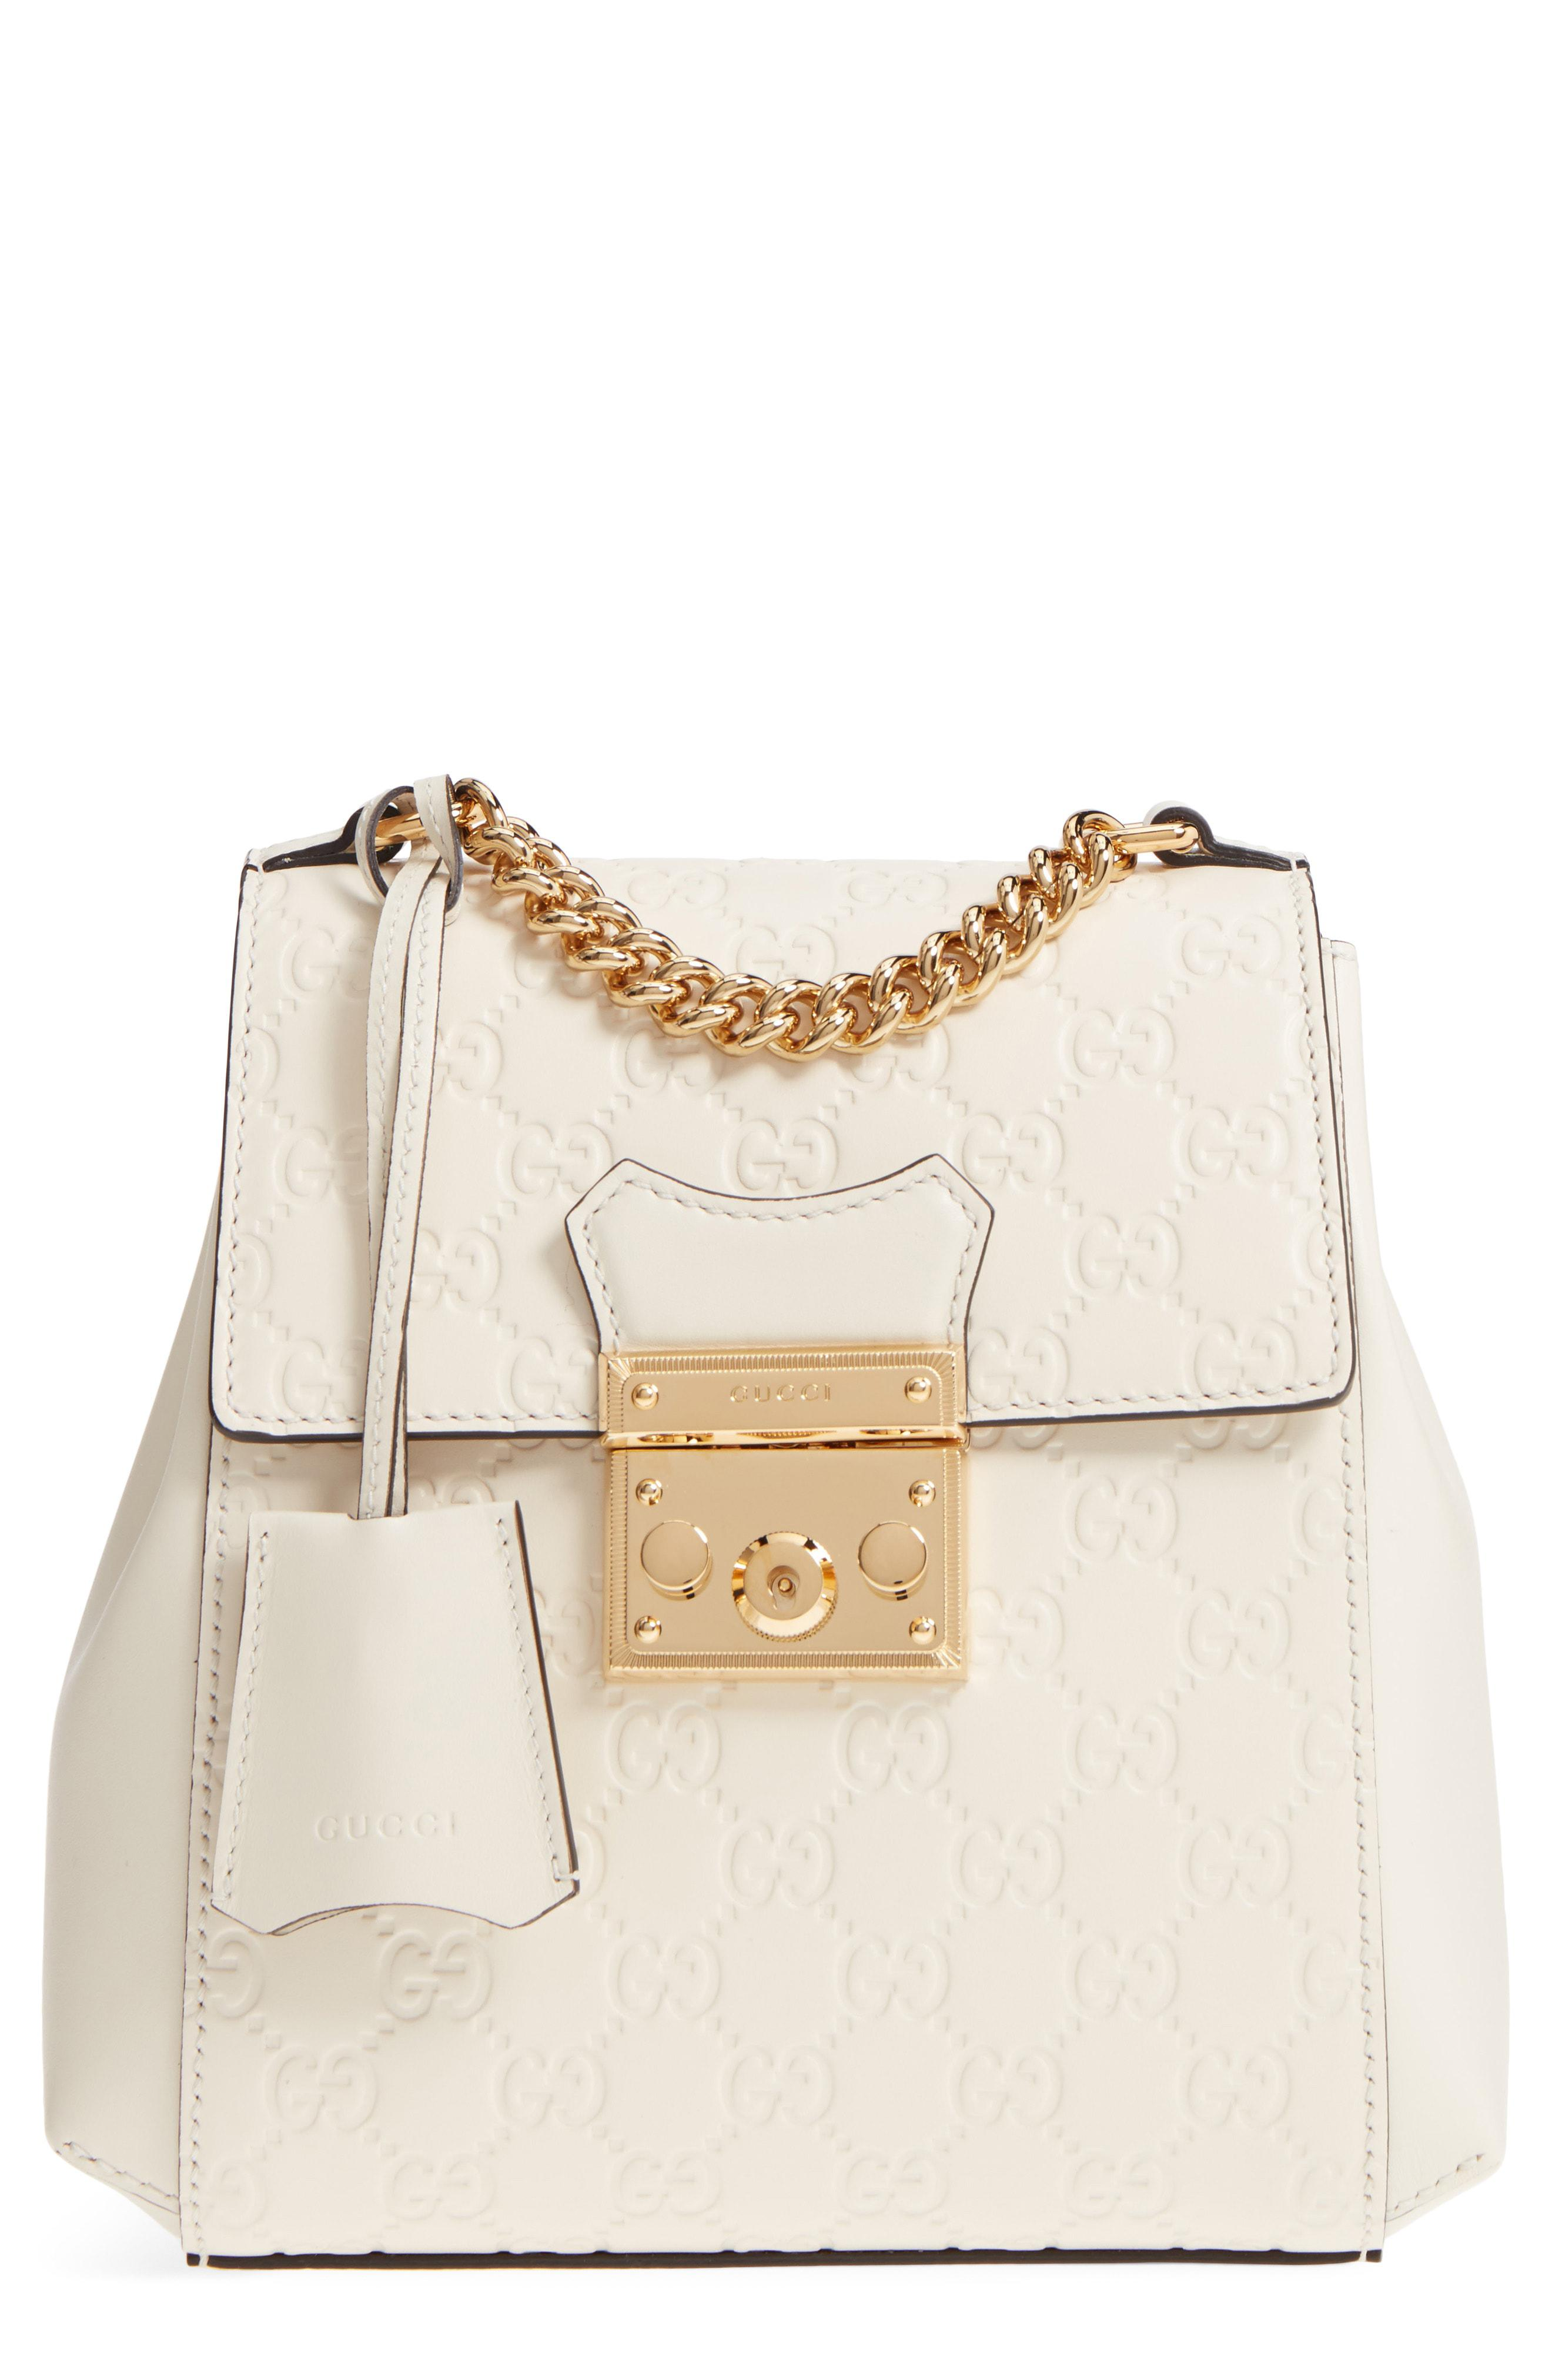 80be5921997 Gucci Gg Supreme Leather Padlock Backpack in White - Lyst